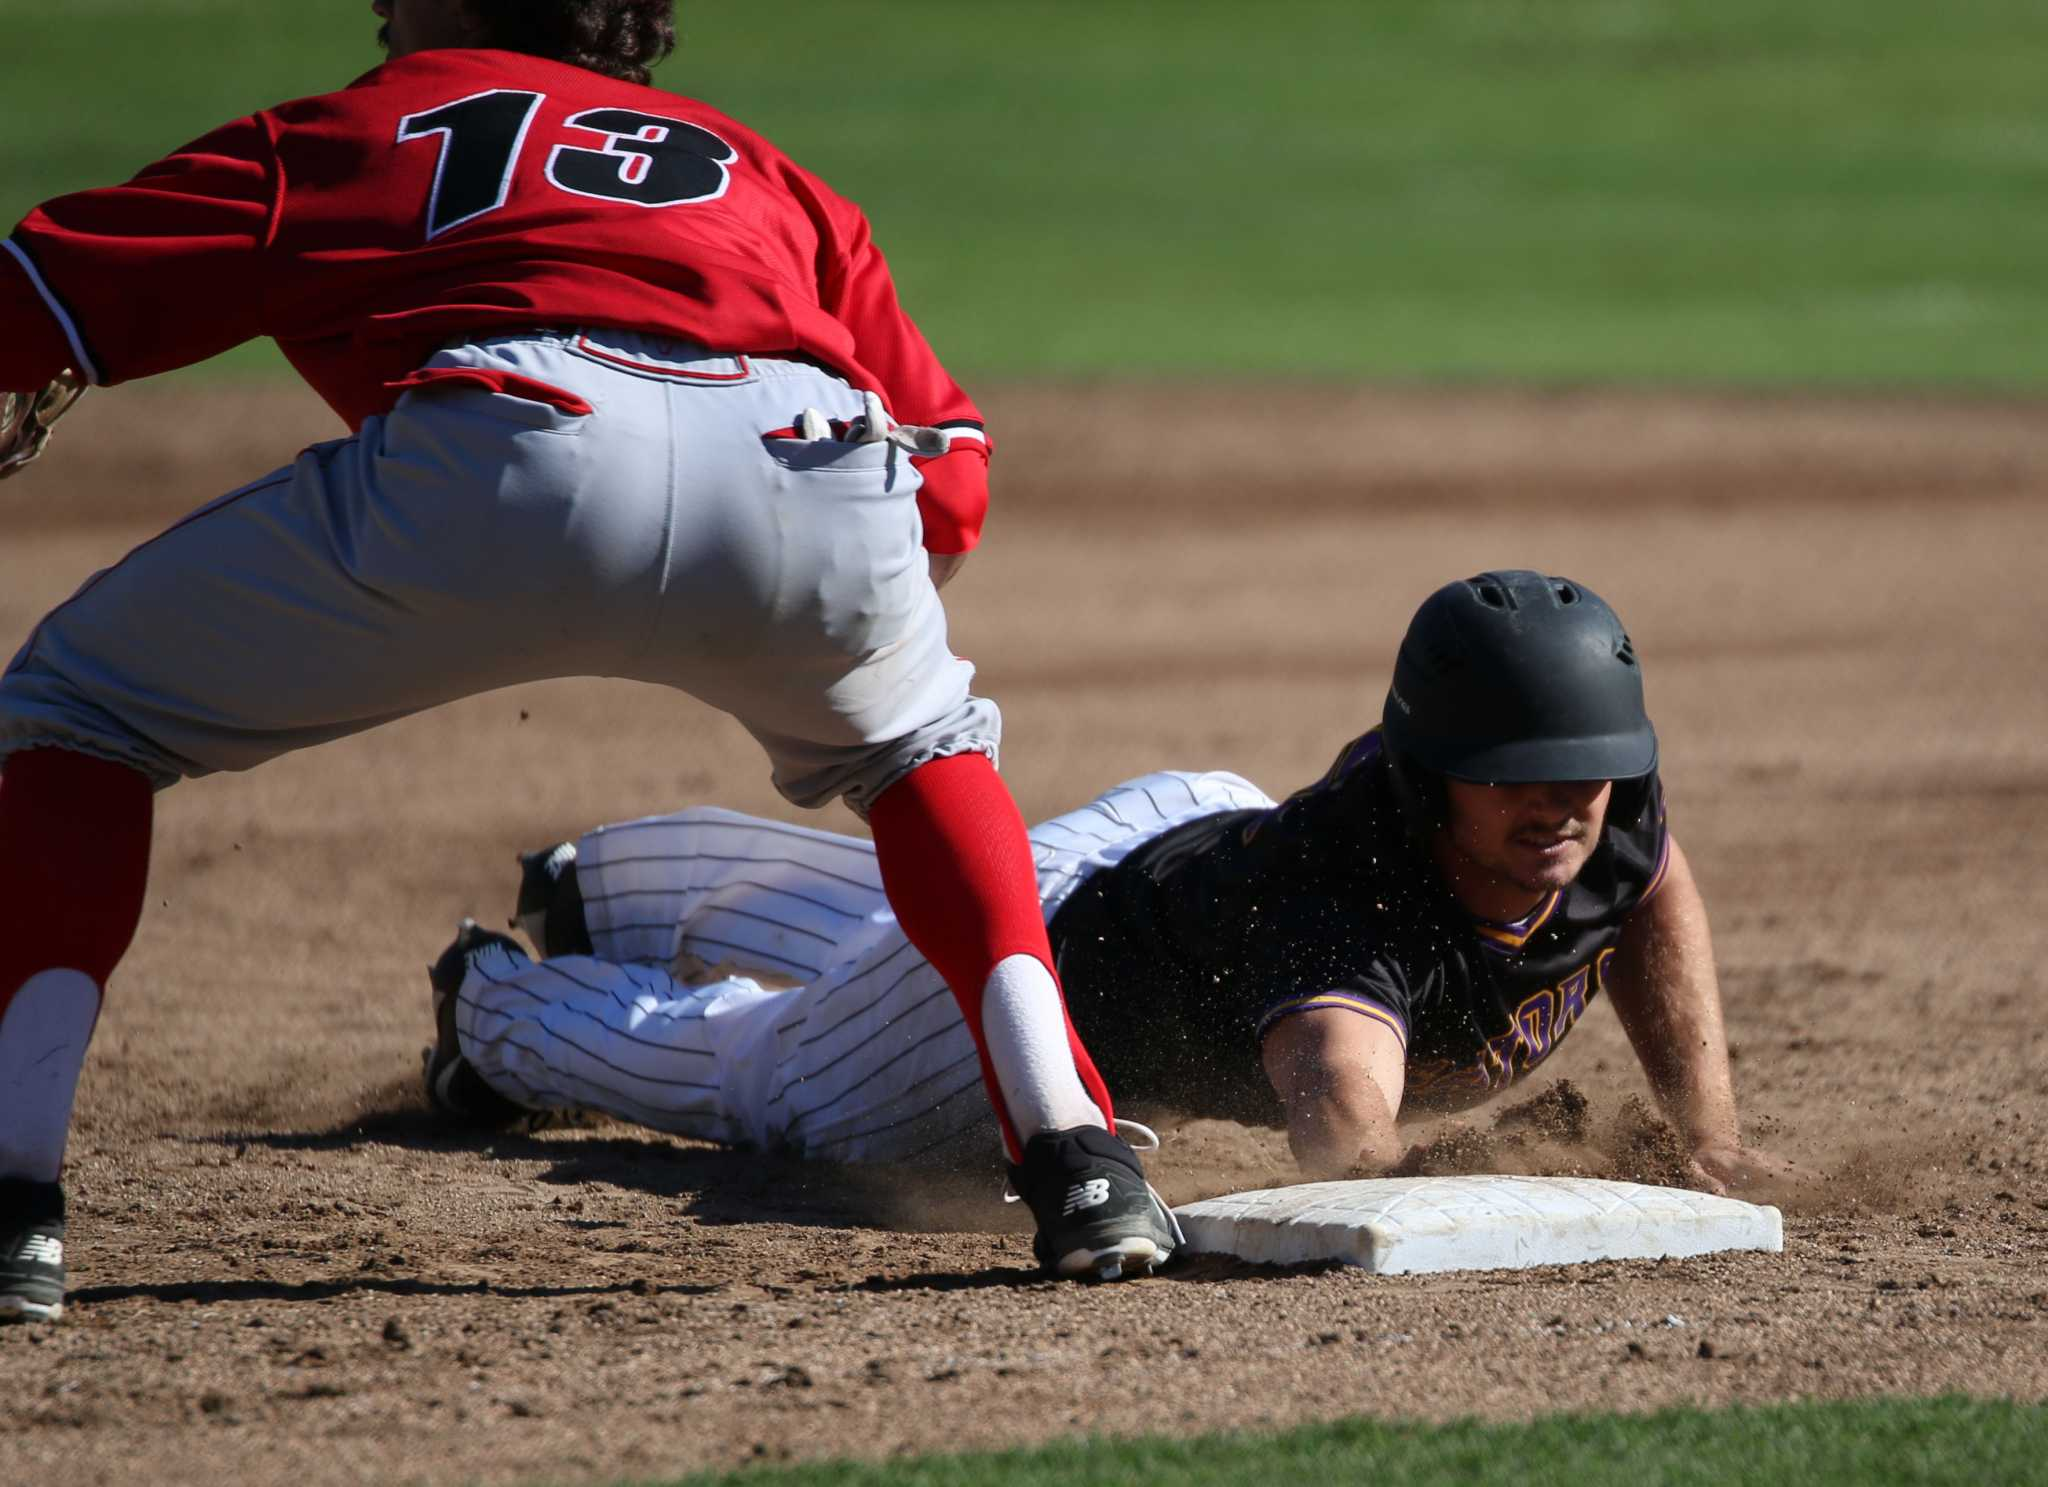 SF State junior outfielder, Zac Neumann (3), dives back to first base against Stanislaus State at SF State on March.11, 2017 (Kyler Knox/Xpress)